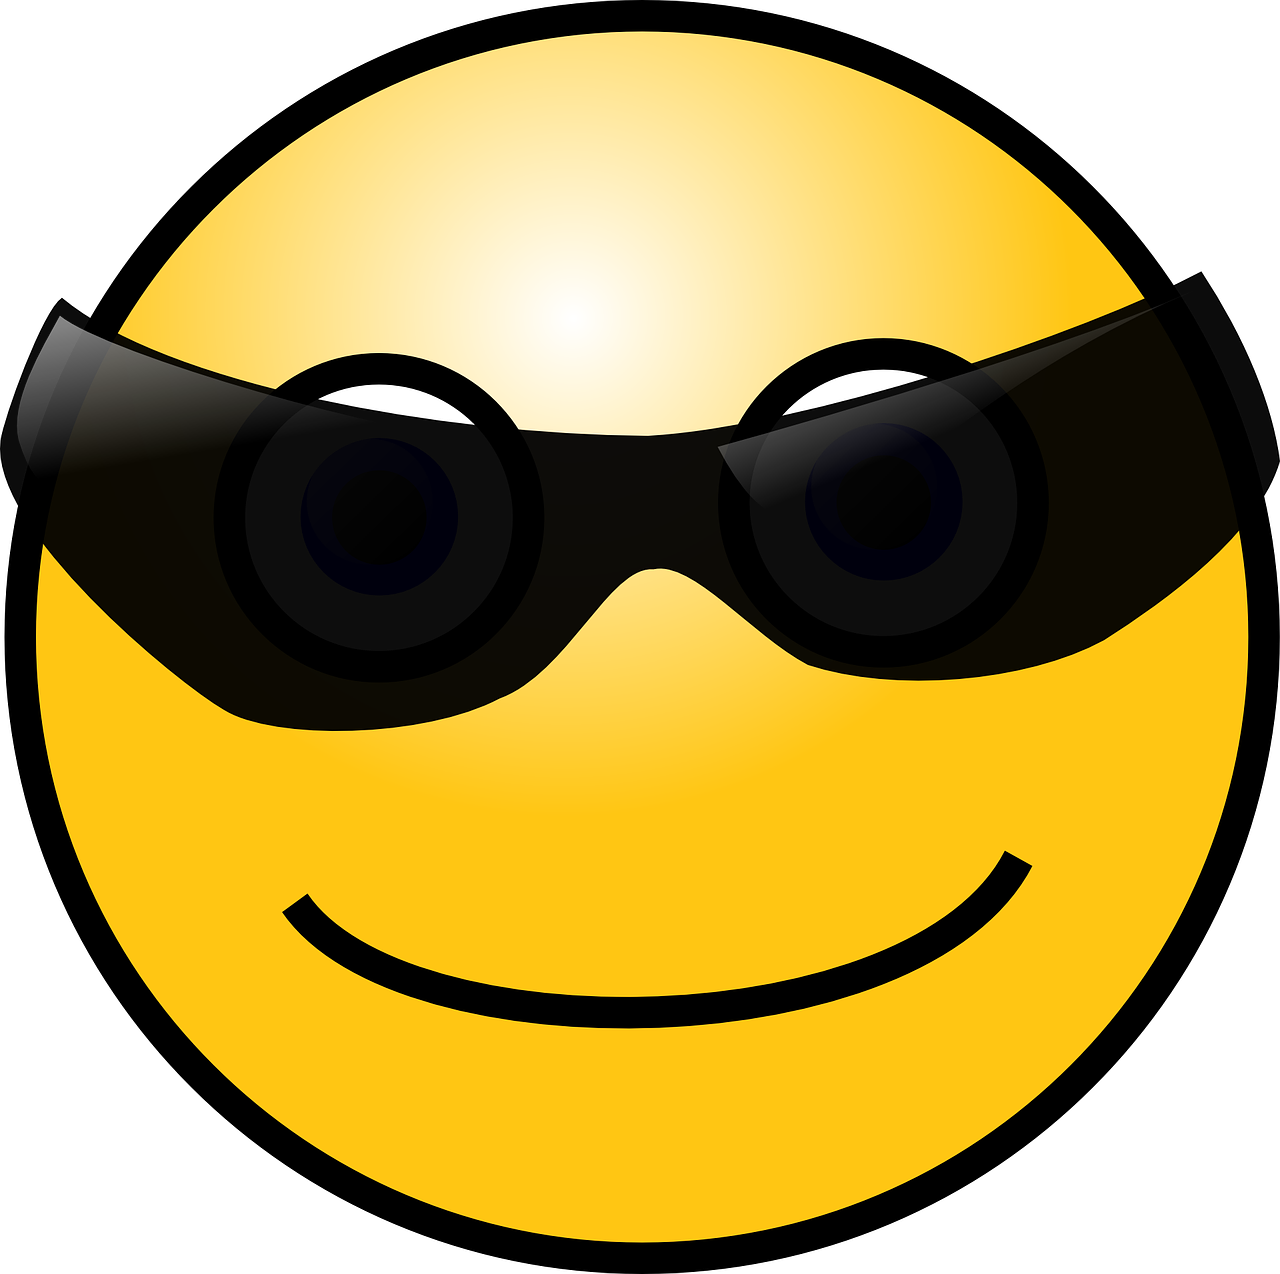 smiley sunglasses face free photo